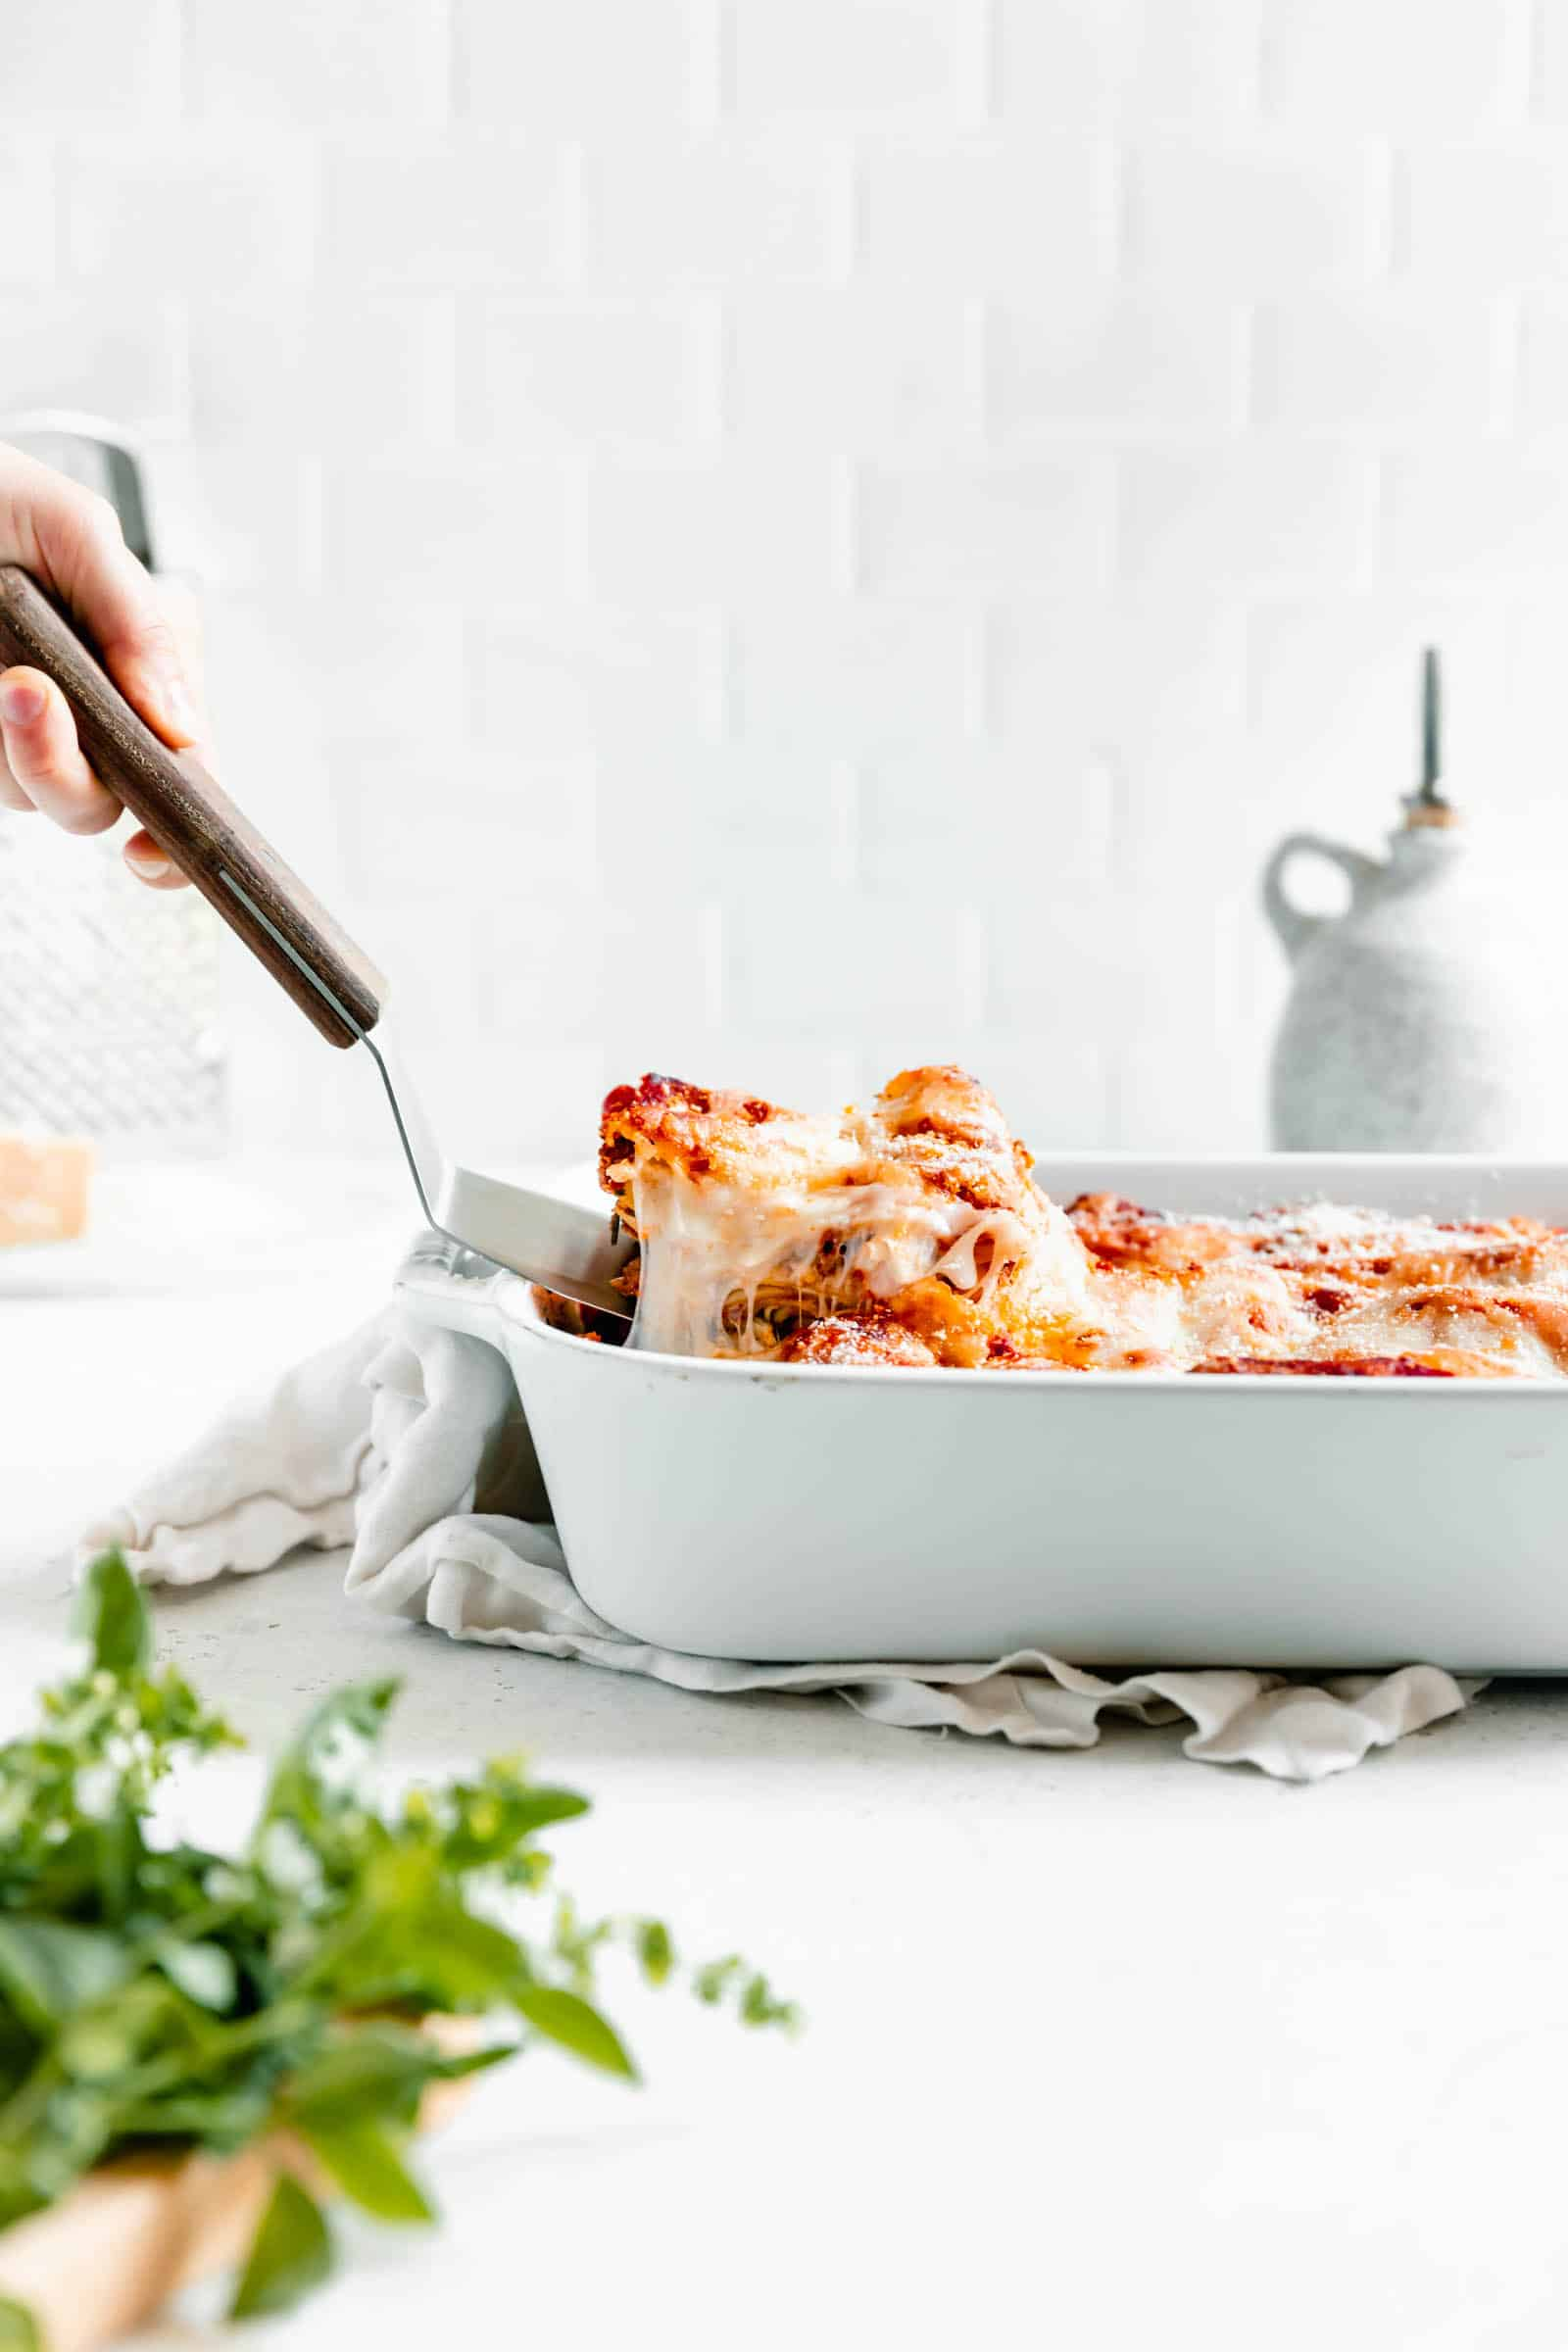 Classic homemade meat lasagna piece lifted out of pan with cheese pull